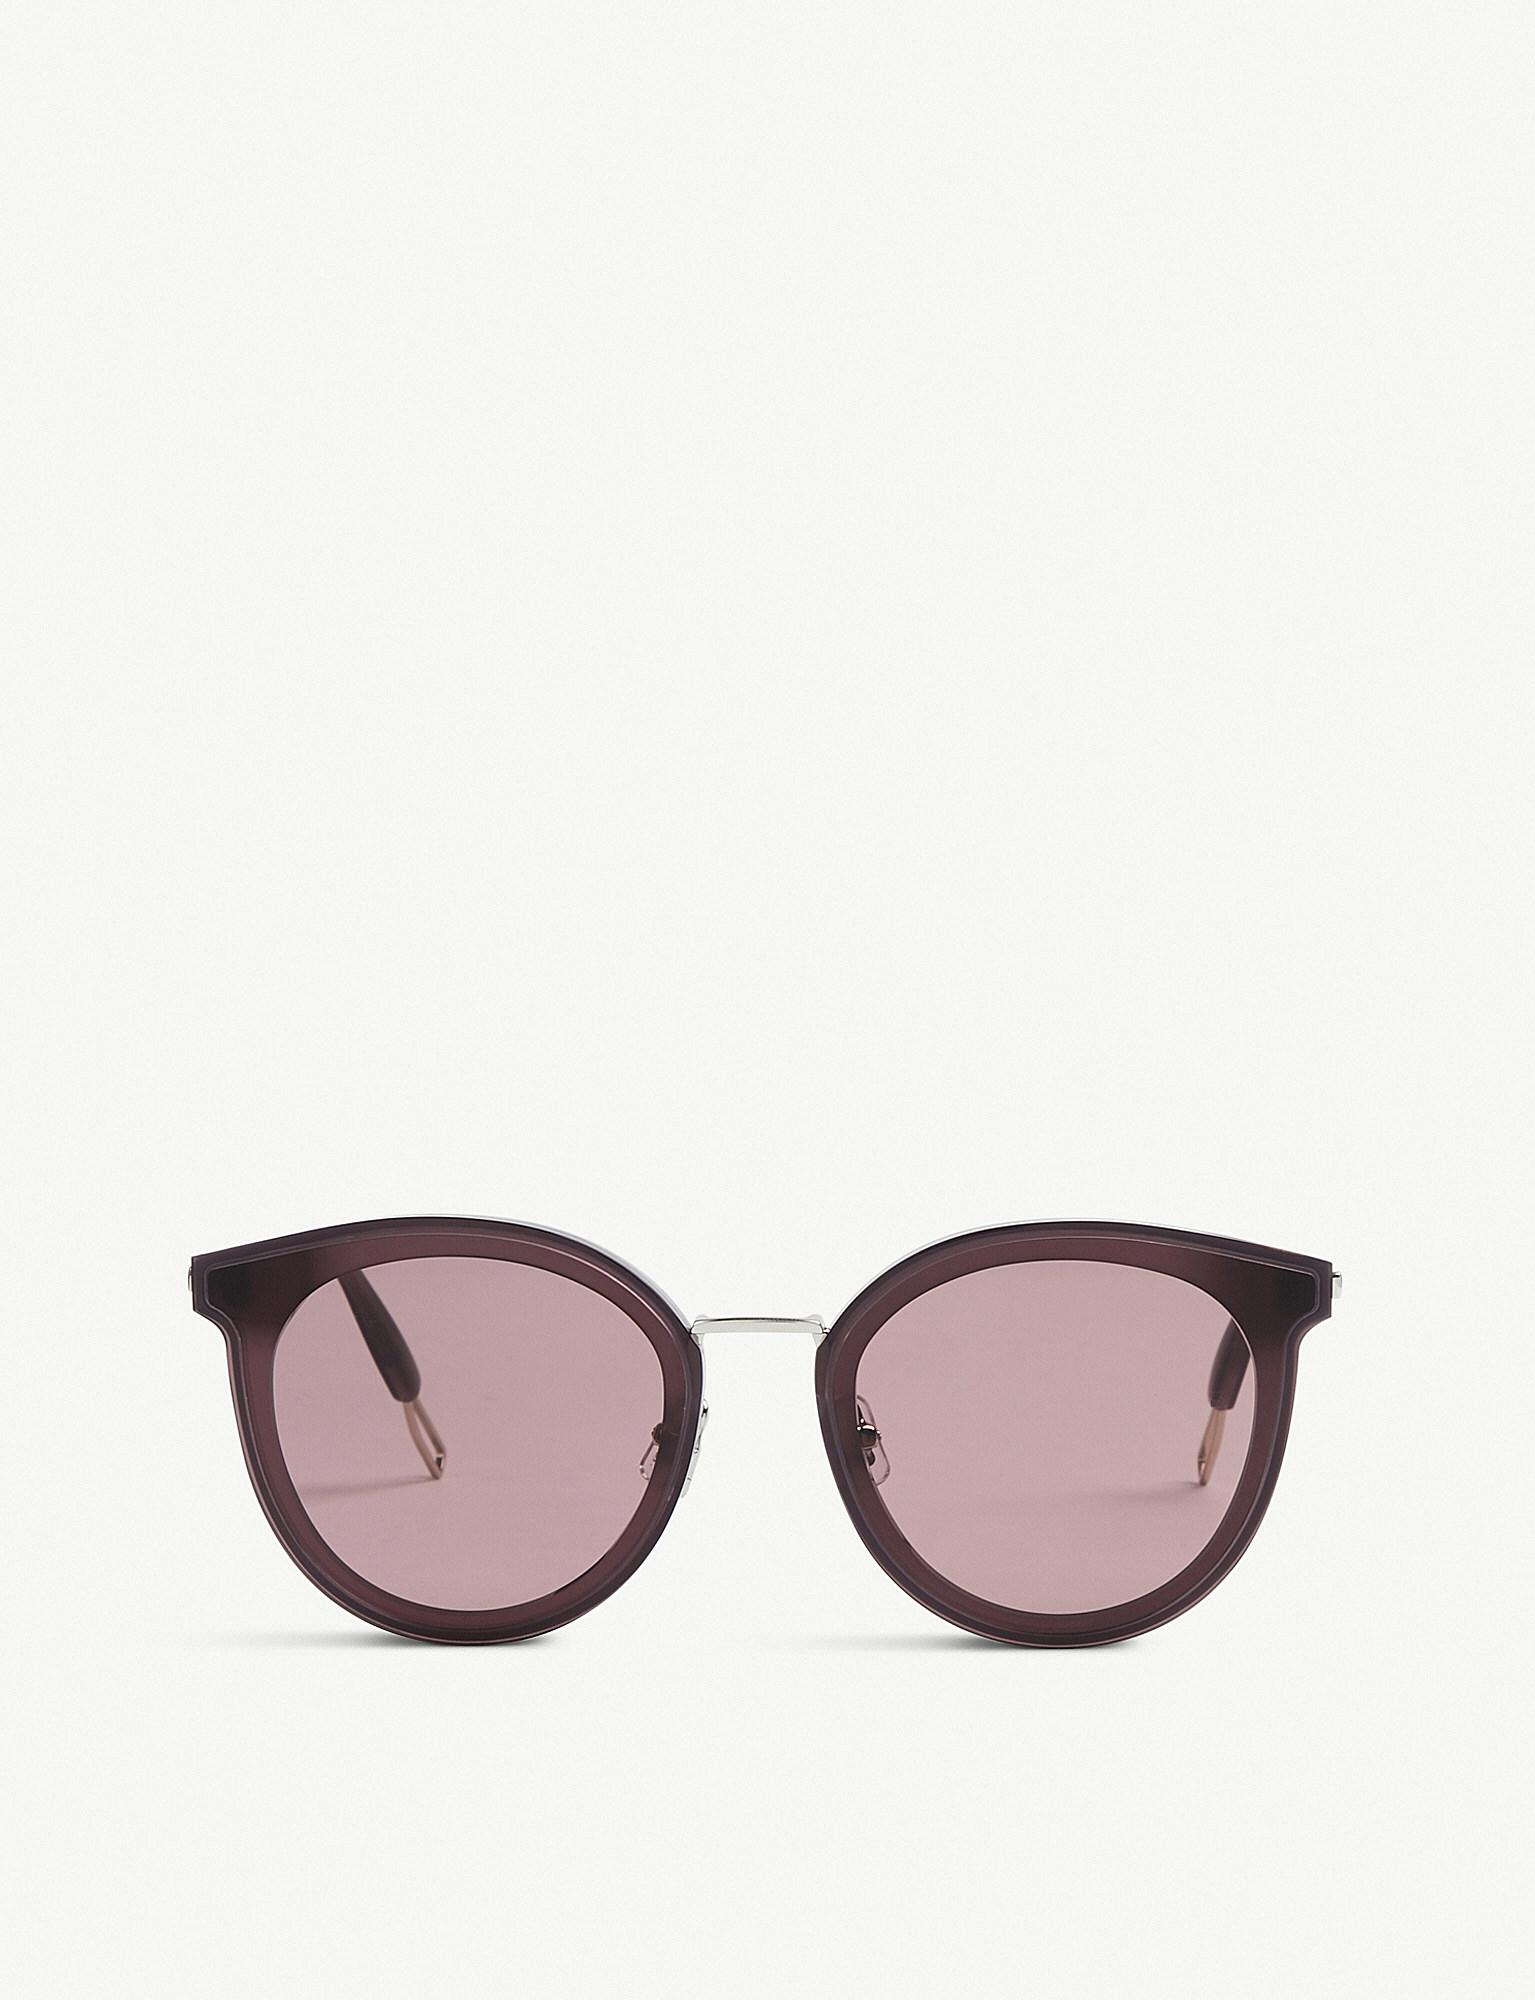 914740574dd Lyst - Gentle Monster Merlynn Wc1 Tinted Round-frame Sunglasses in ...